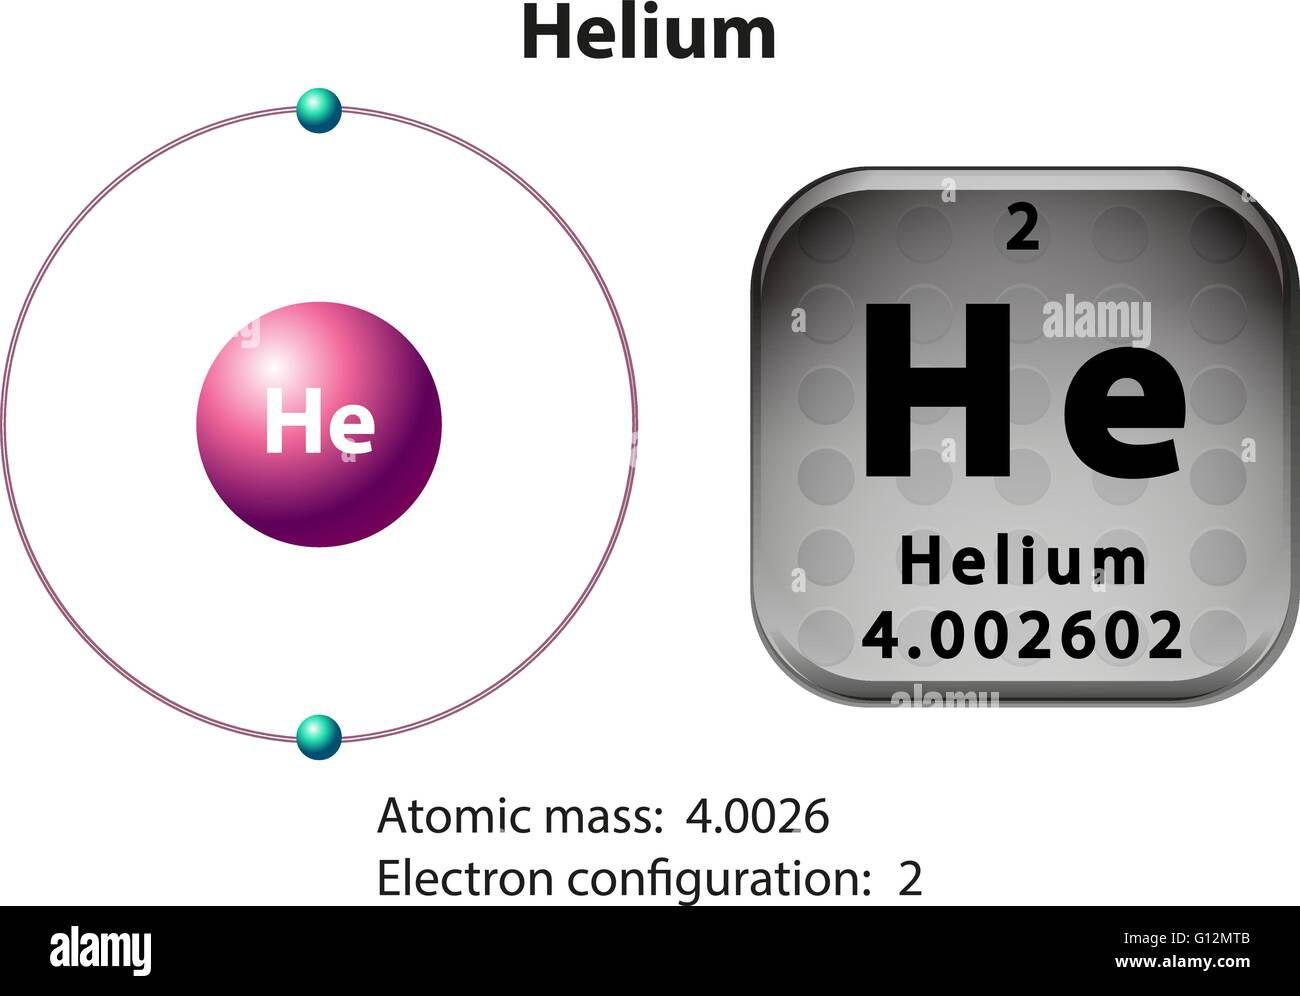 Symbol and electron diagram for helium illustration stock vector art symbol and electron diagram for helium illustration ccuart Gallery